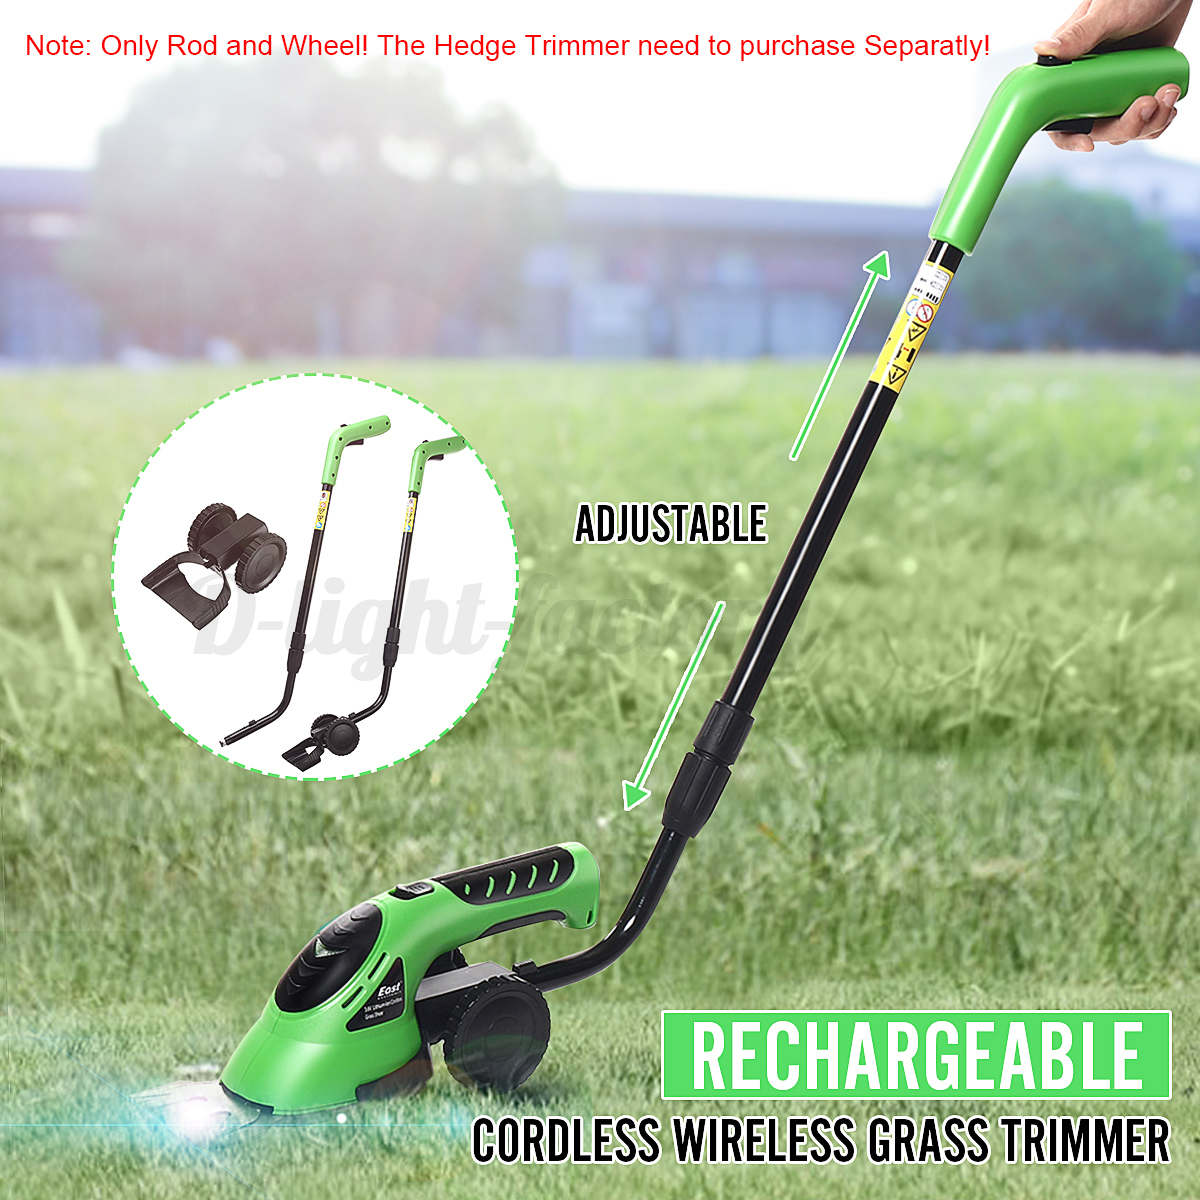 Cordless-Grass-Shear-Lawnmower-Garden-Pruning-Hedge-Trimmer-Rod-Wheel-Holder thumbnail 1